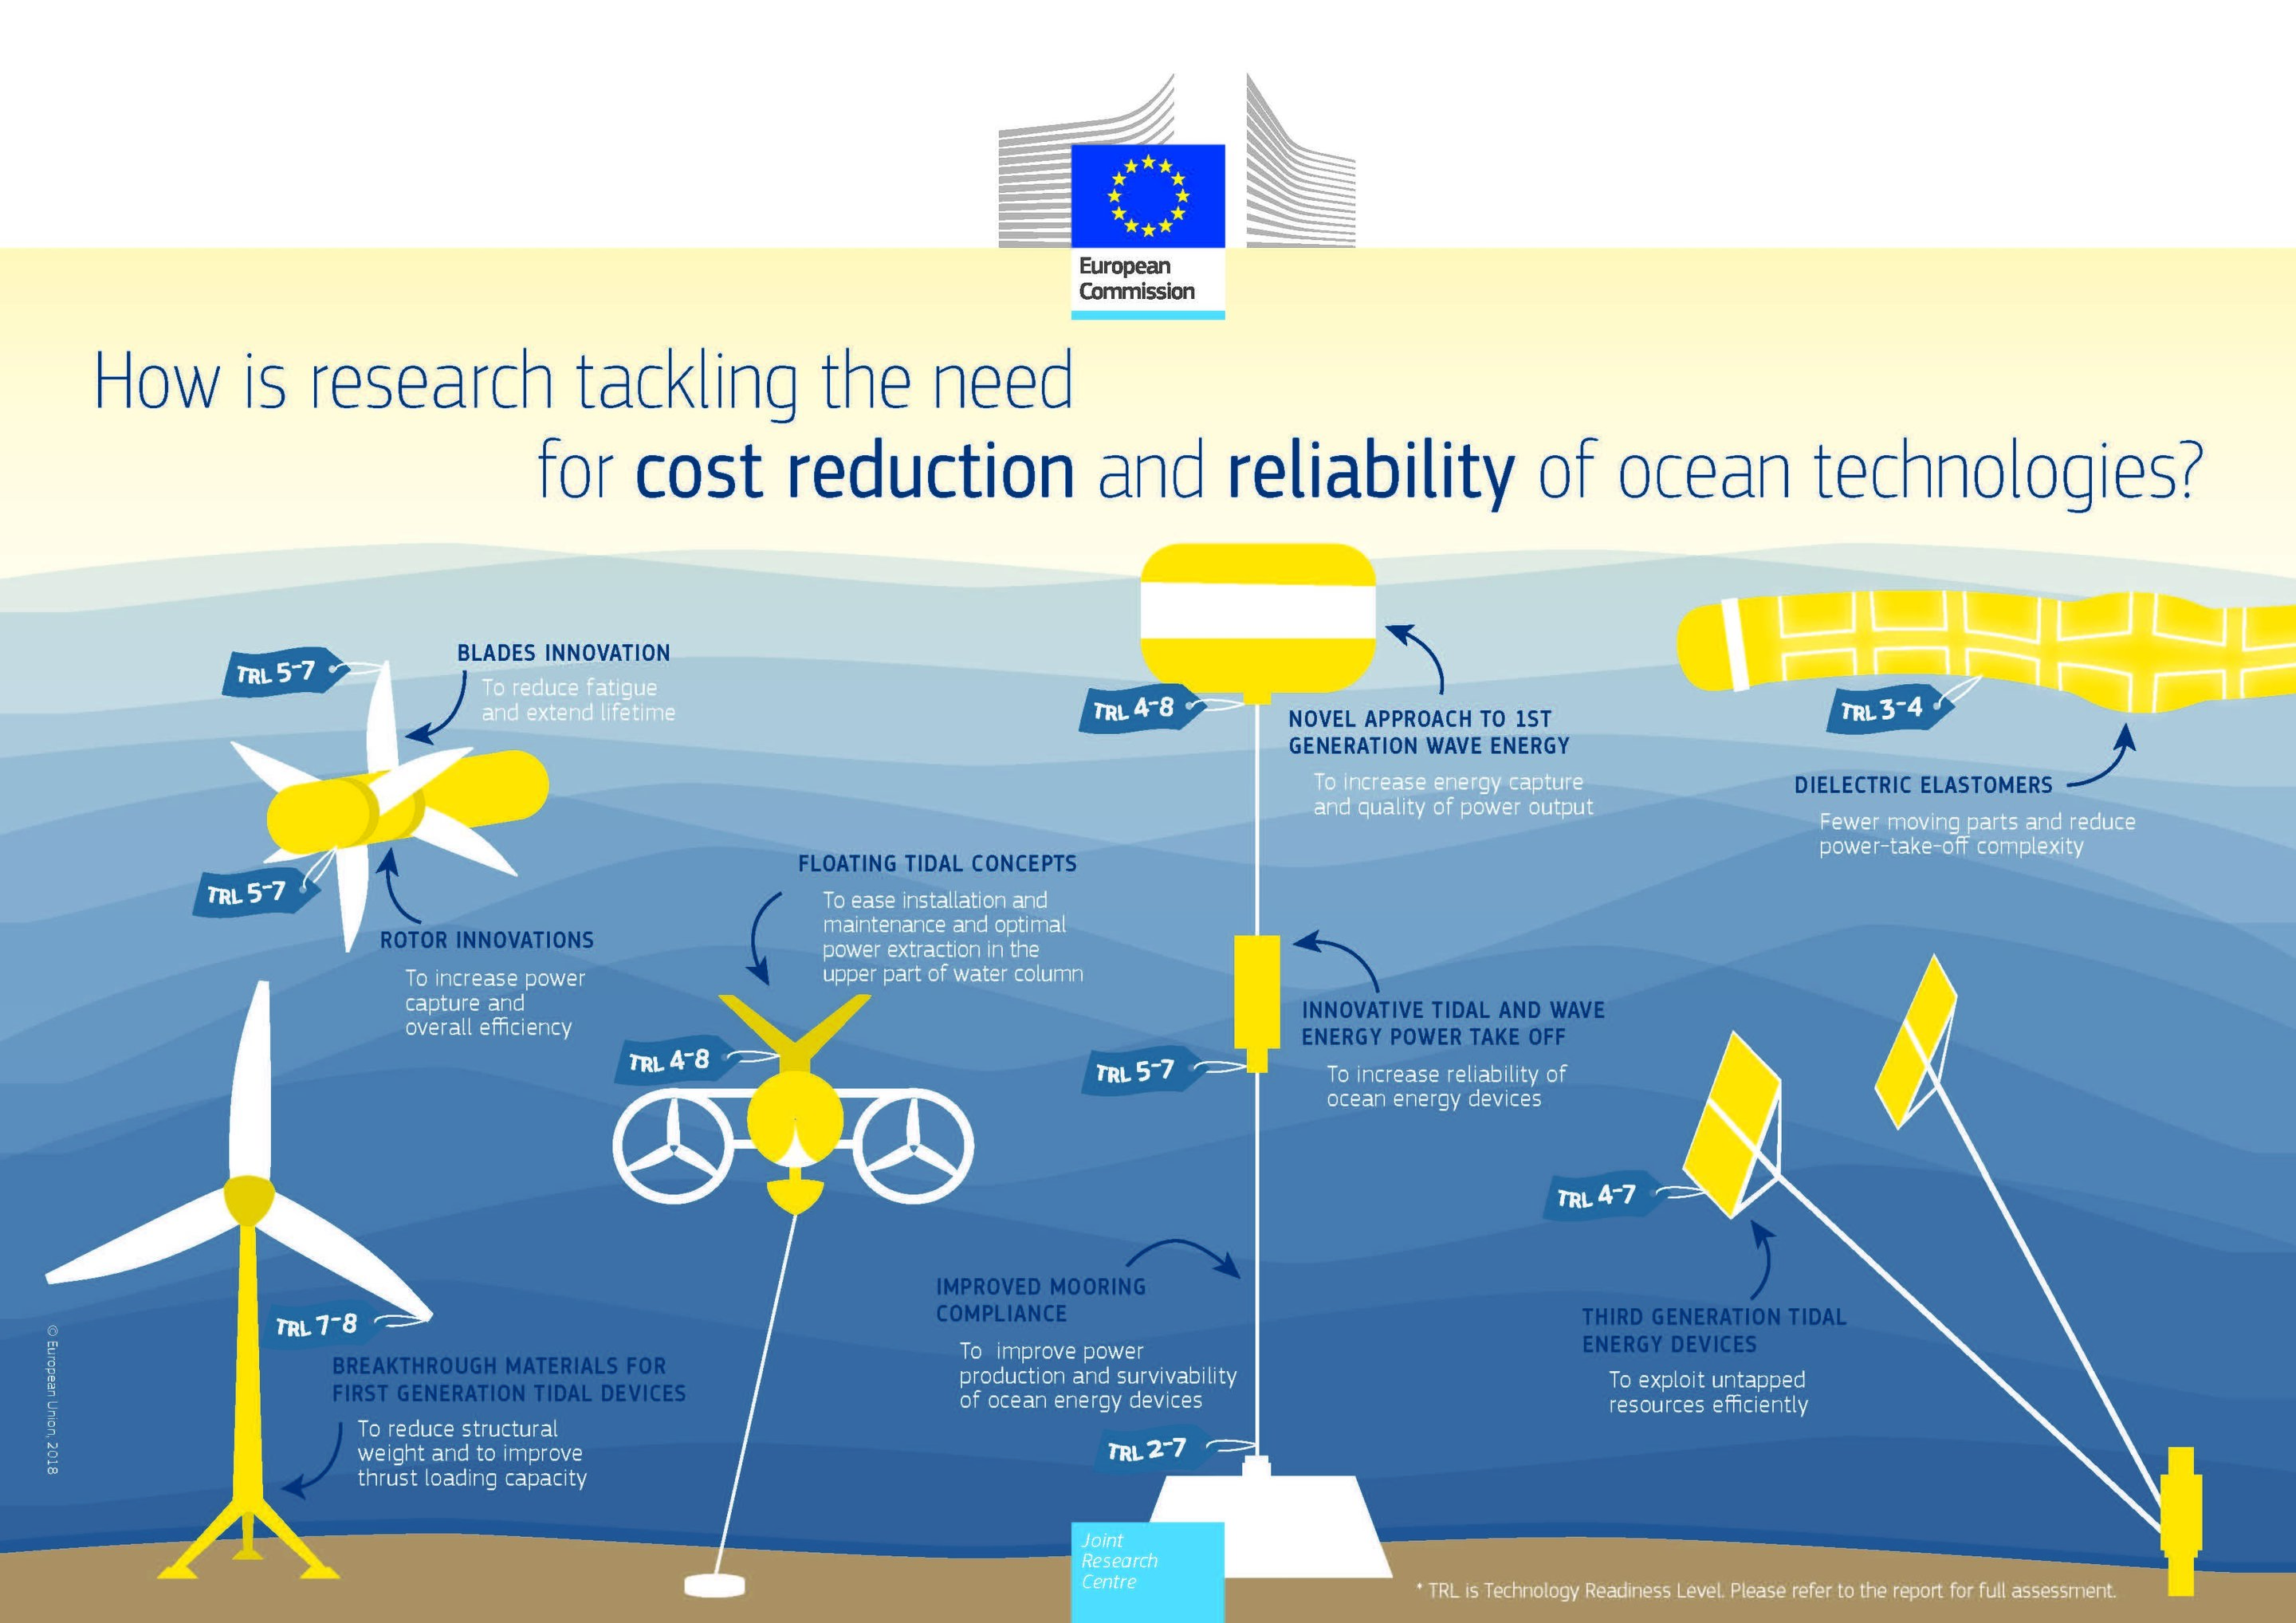 New technologies in the ocean energy sector on